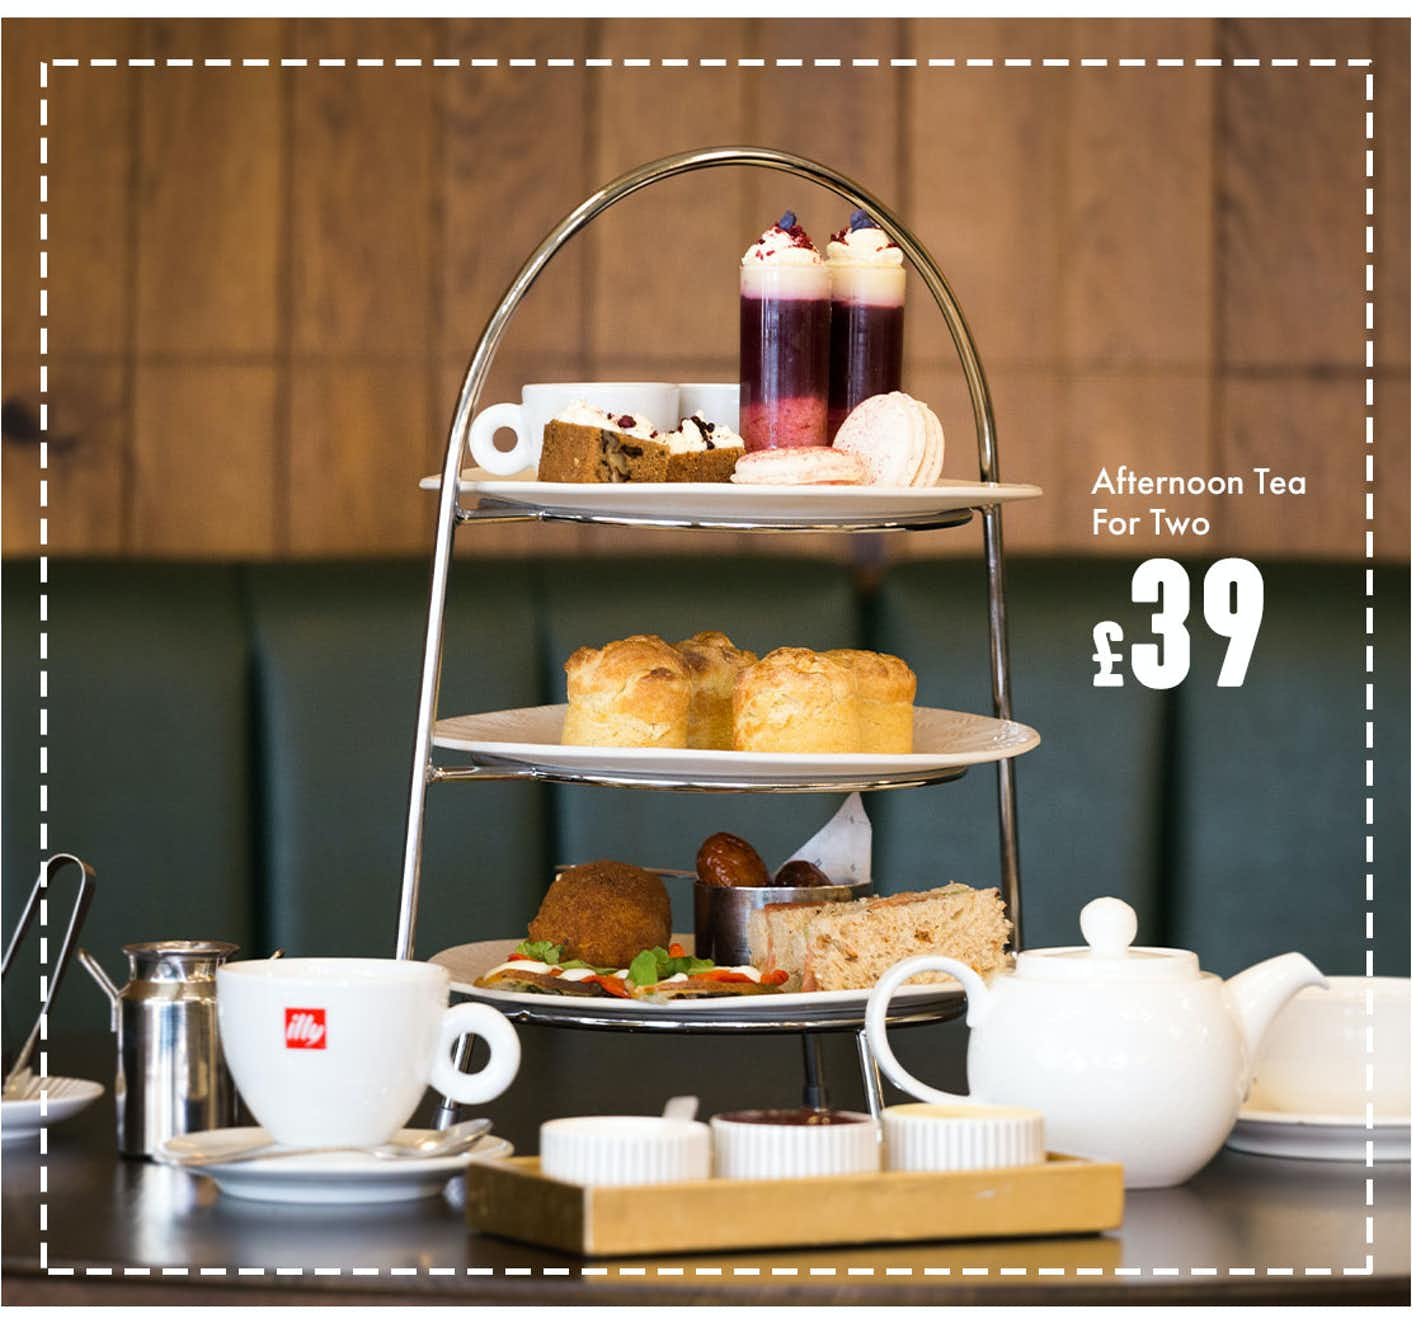 shop Afternoon Tea experiences